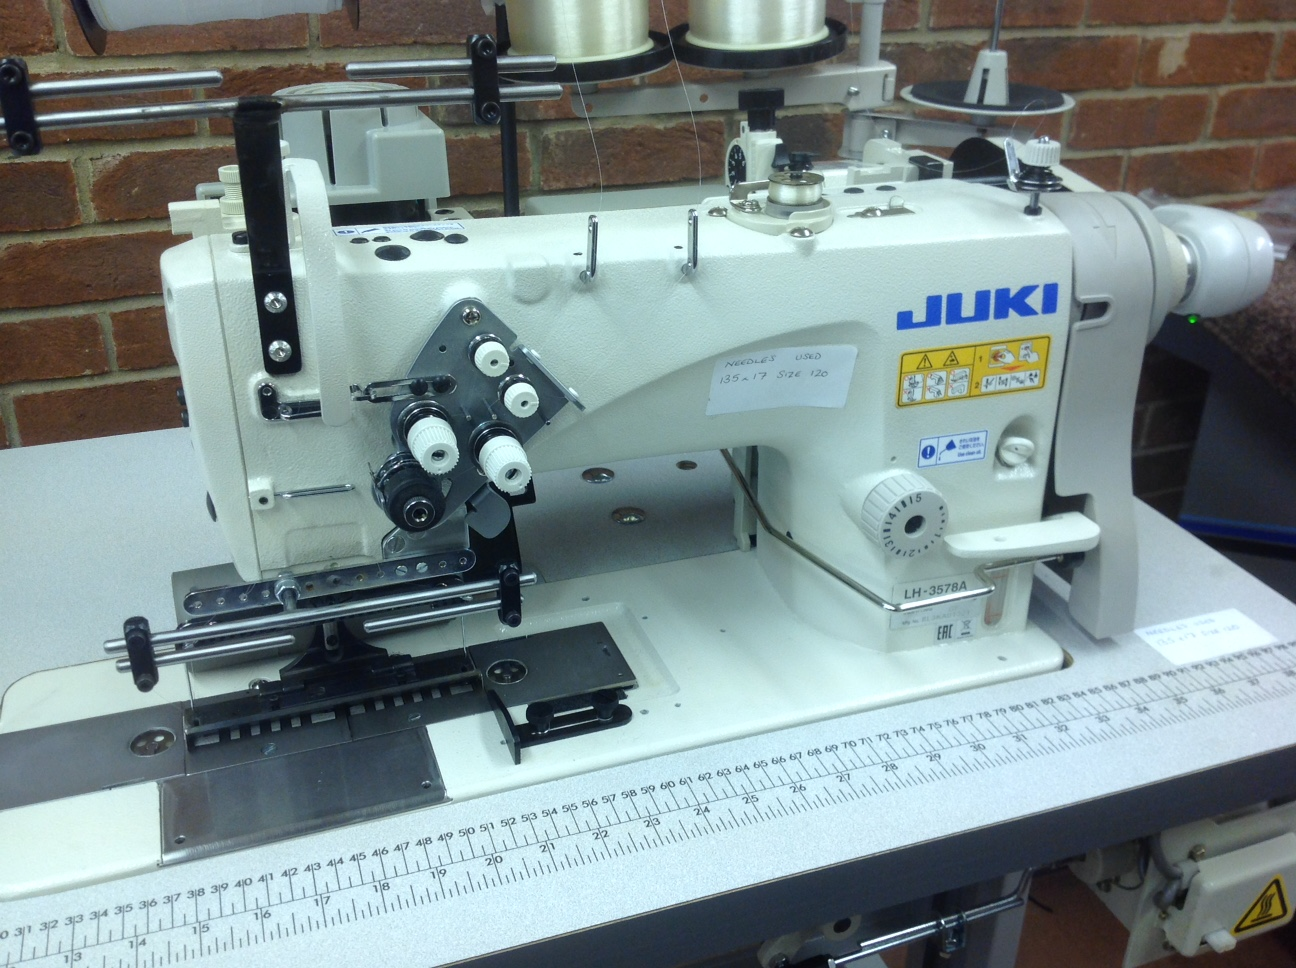 Juki LH-3578A doble aguja calibre 138mm